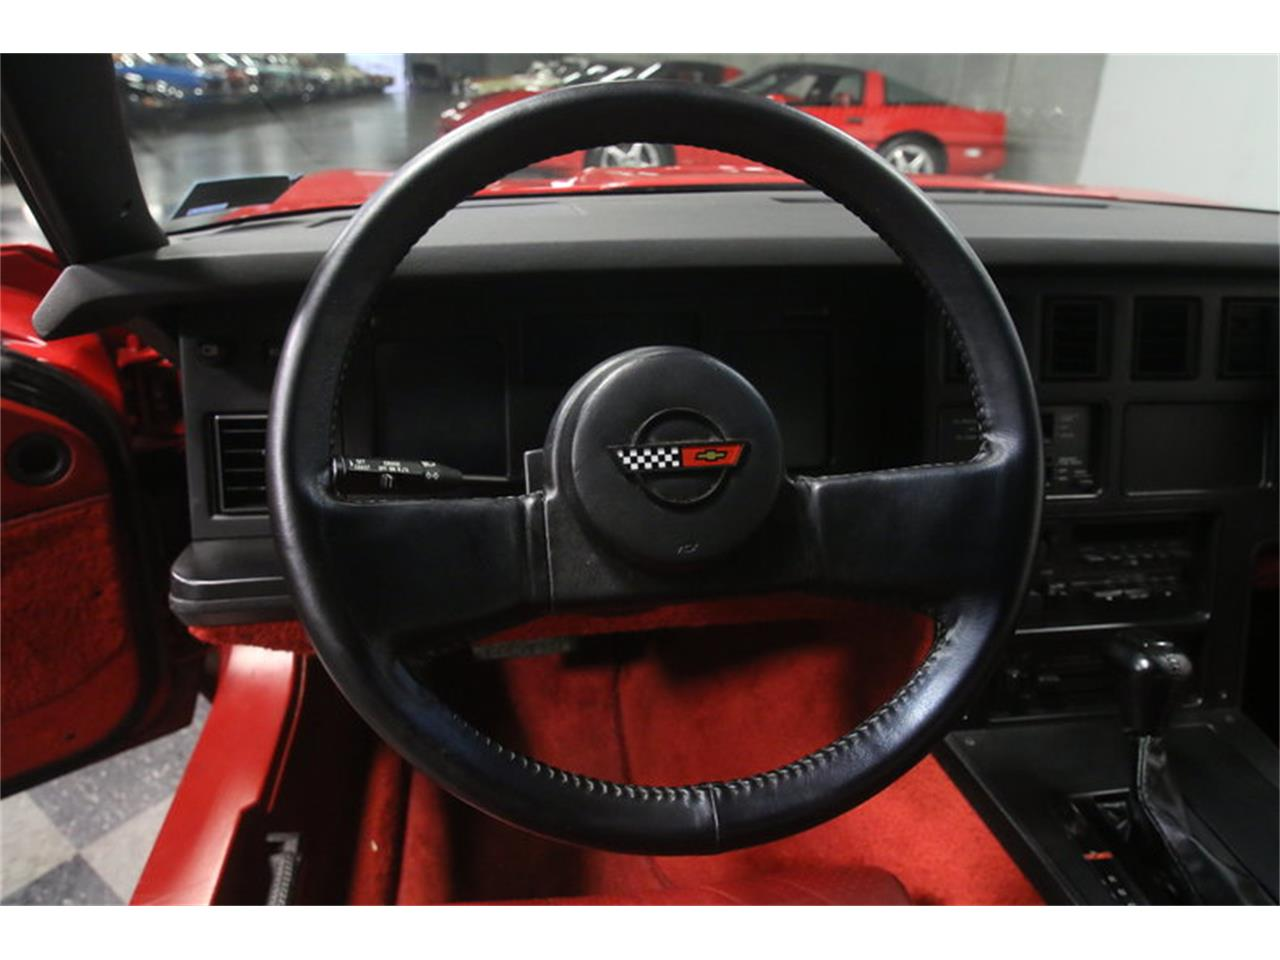 Large Picture of '84 Corvette located in Lithia Springs Georgia - $19,995.00 - MZ8R